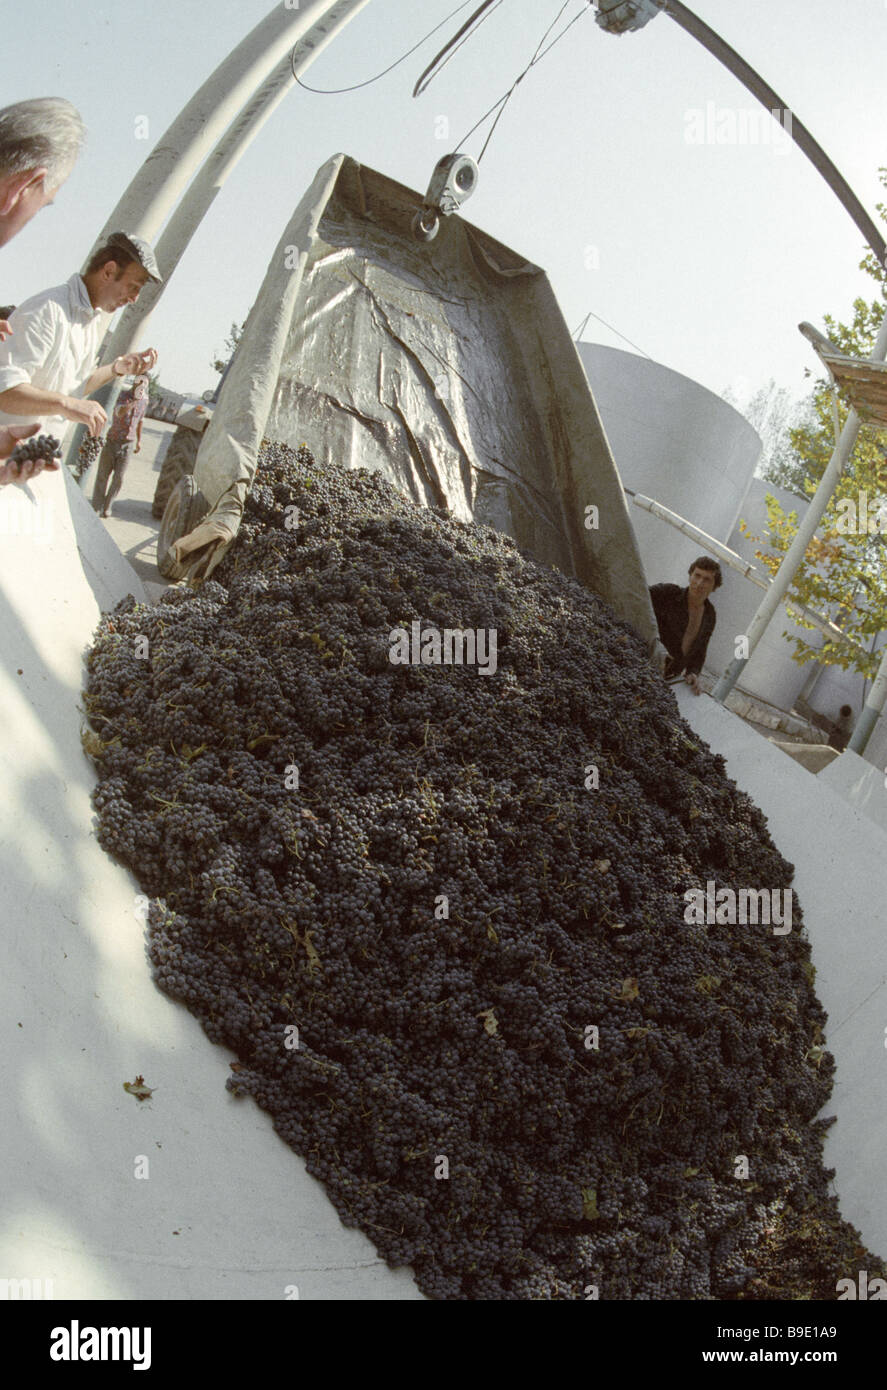 Workers using a winch to unload grapes from a tractor at the Teliani winery - Stock Image